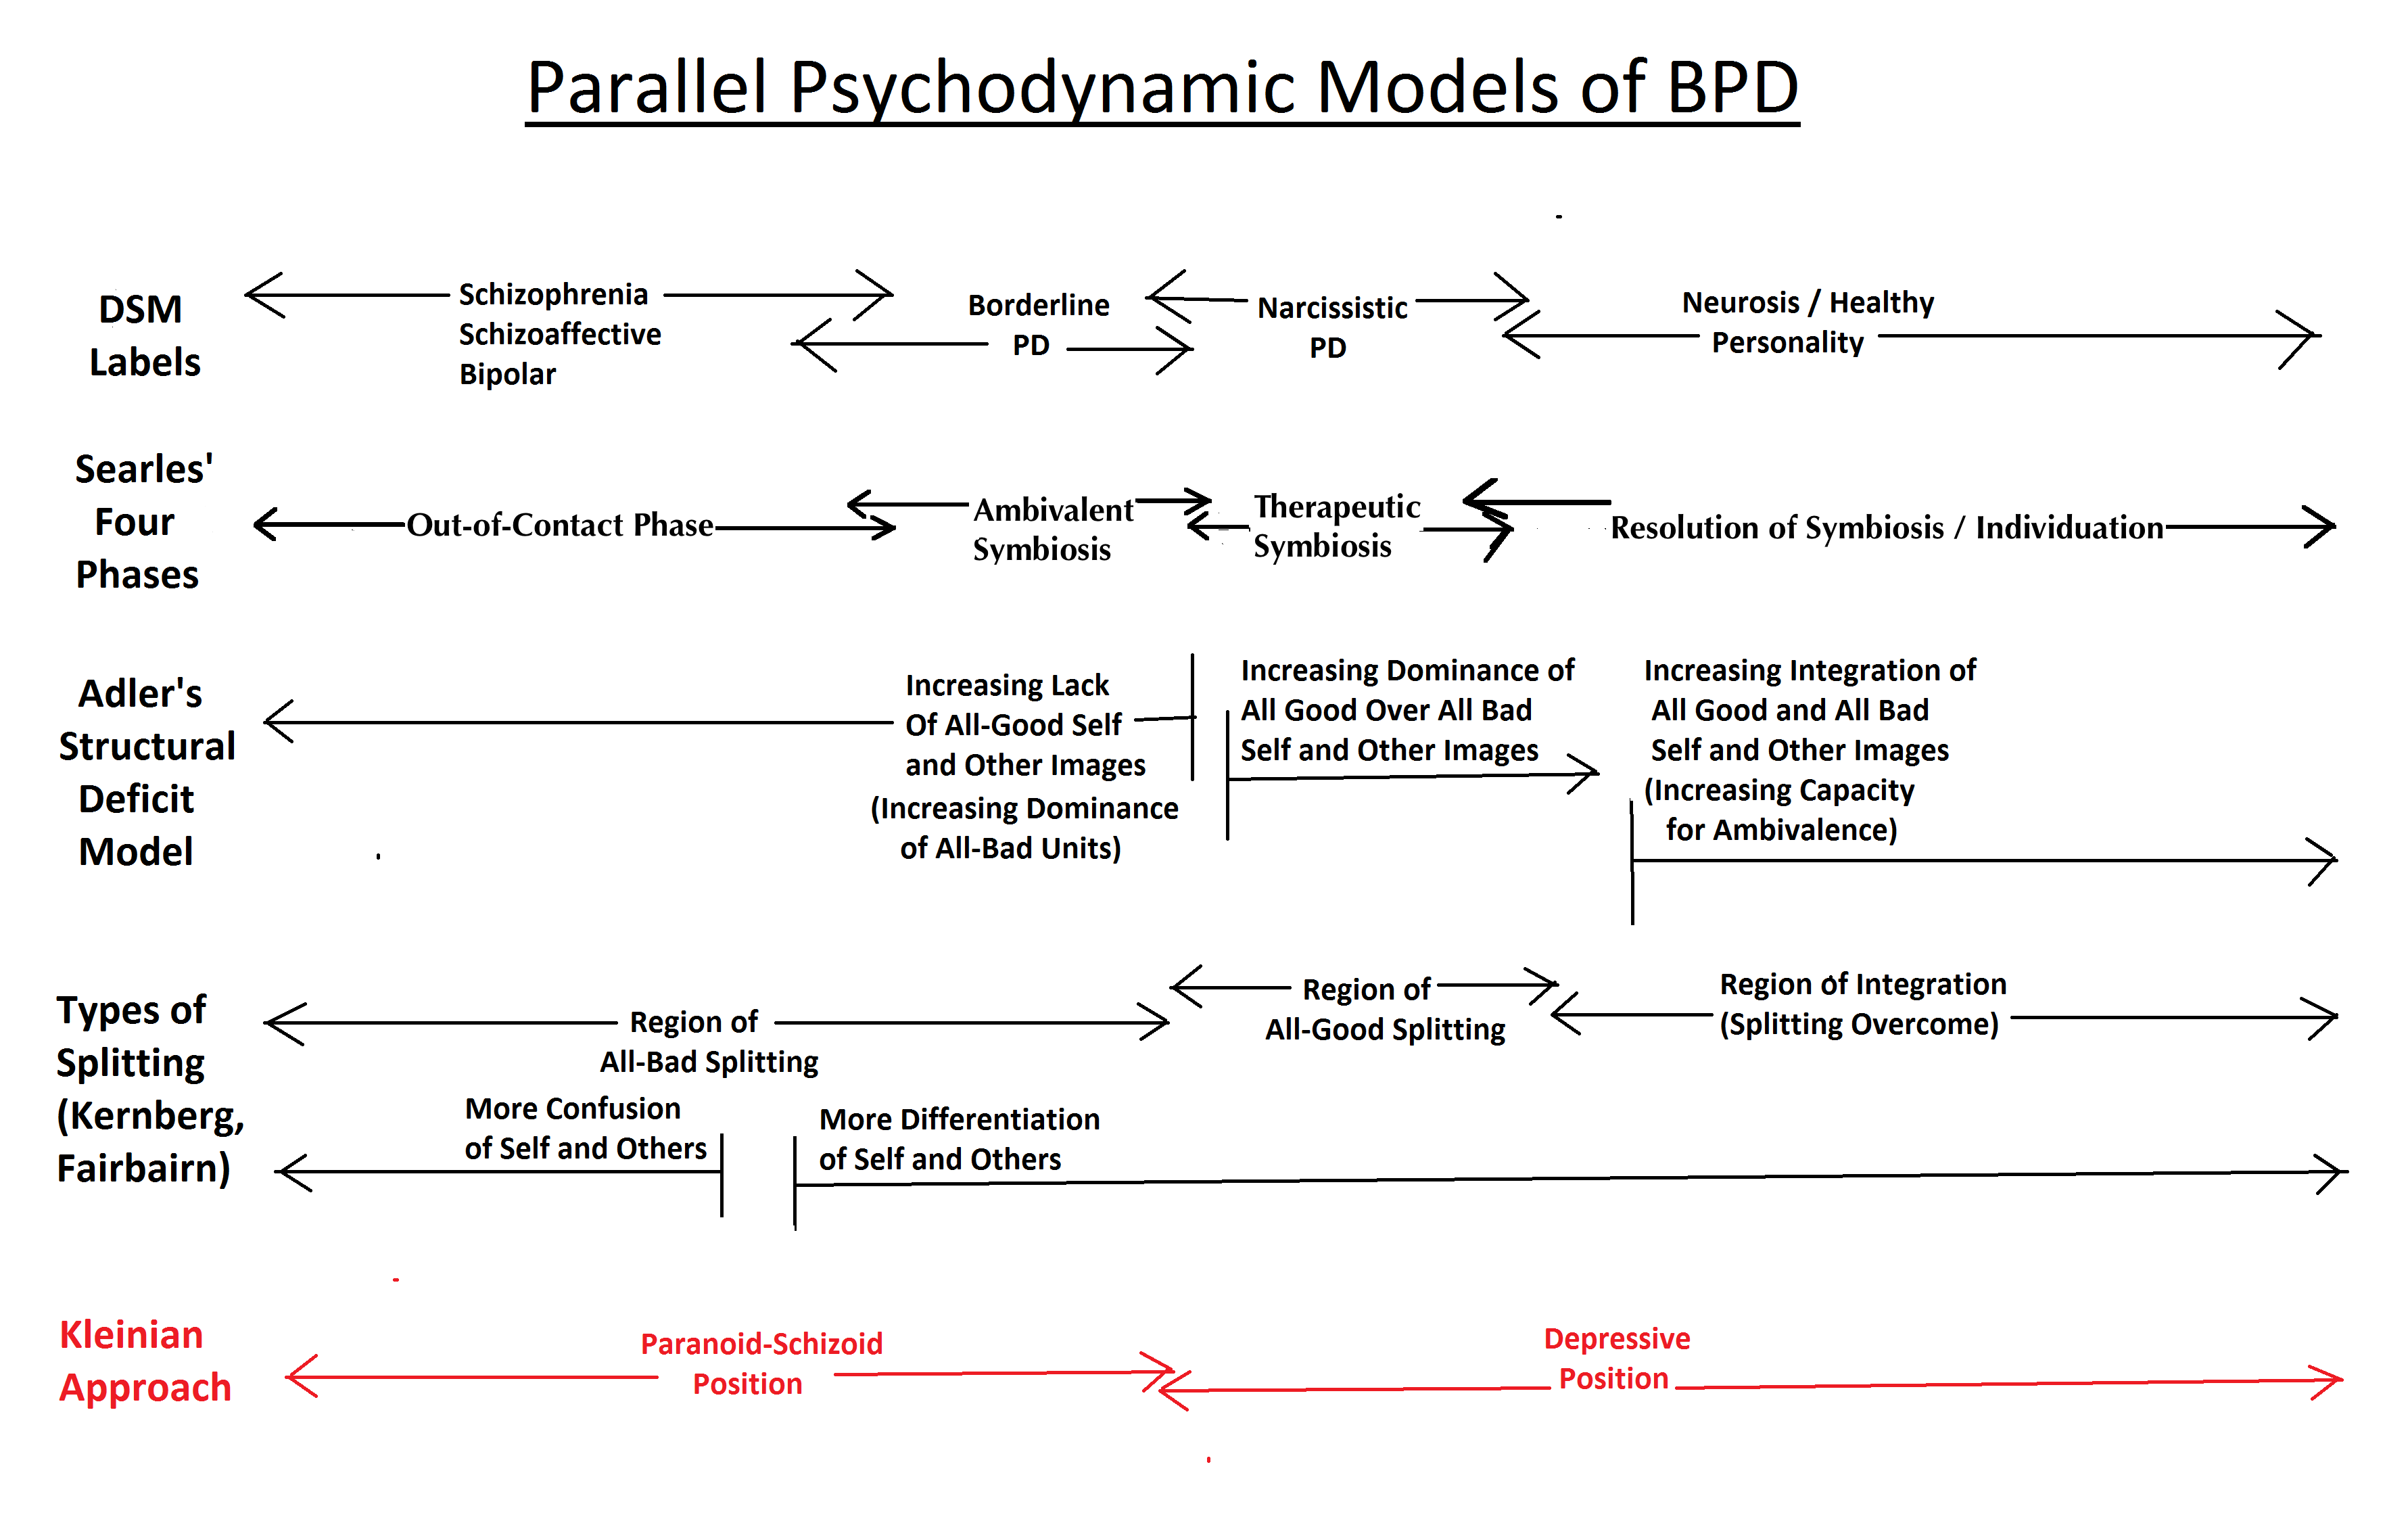 bpd transformation how i understood and recovered from parallelpsychmodels1